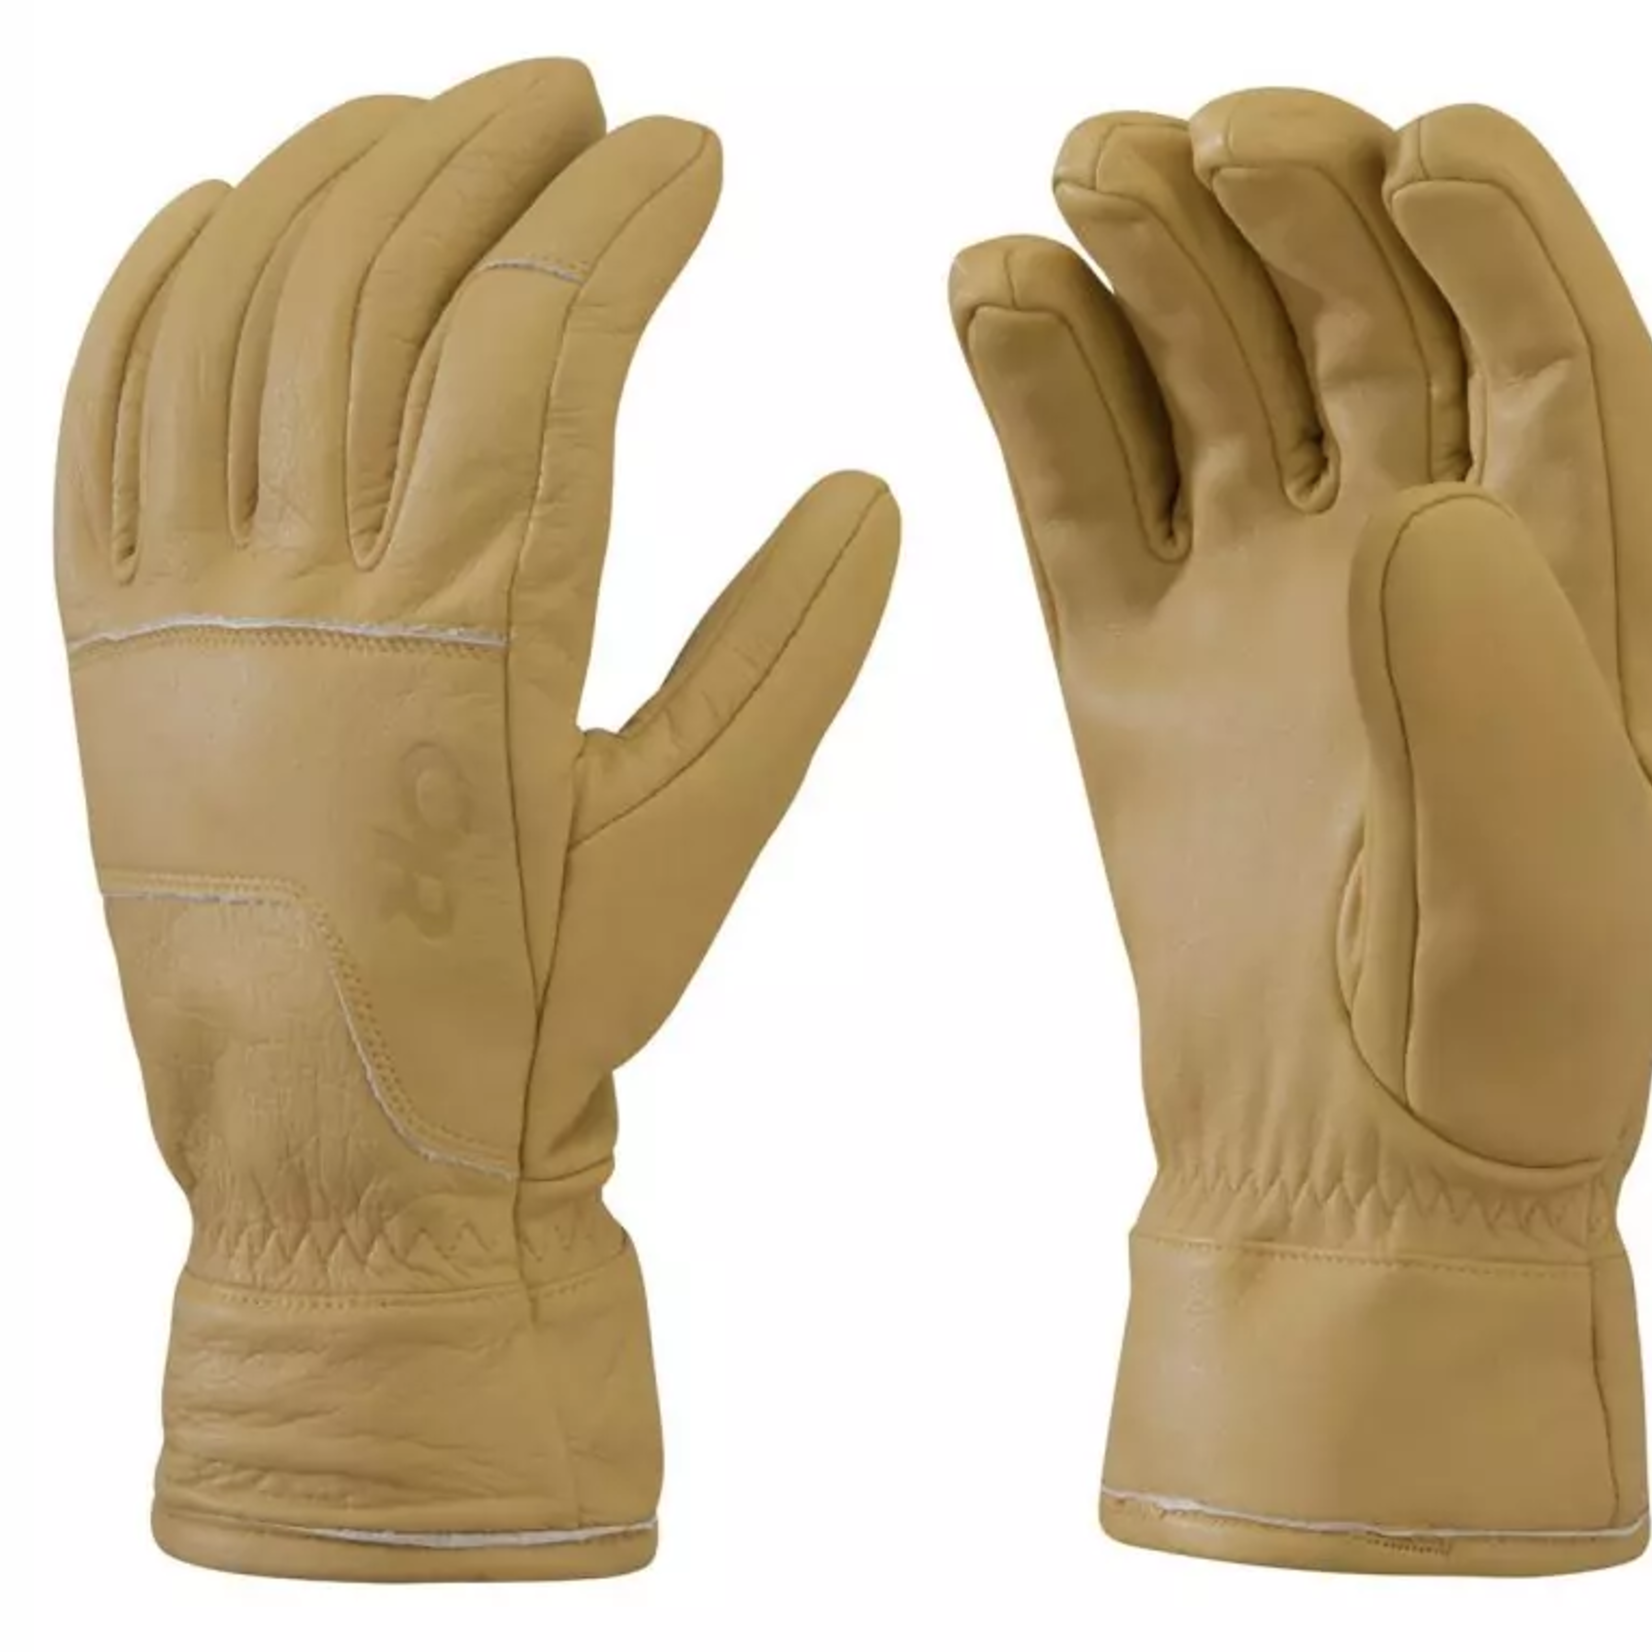 Outdoor Research Outdoor Research Aksel Work Gloves - P-126861